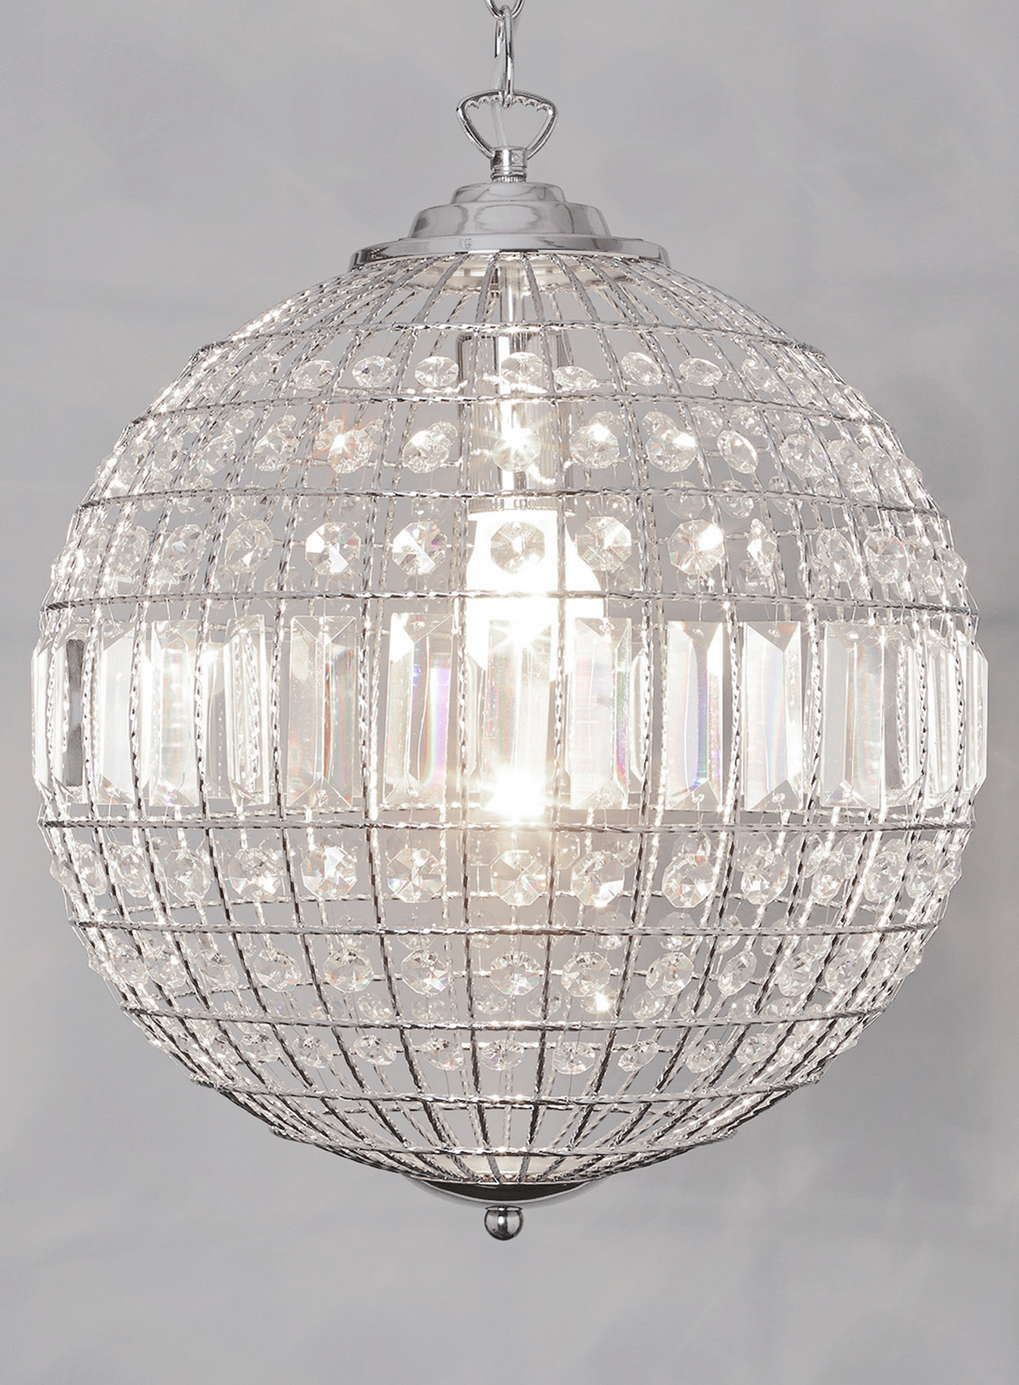 17 Best images about Lighting on Pinterest | Ceiling pendant, Crystal ball  and Search